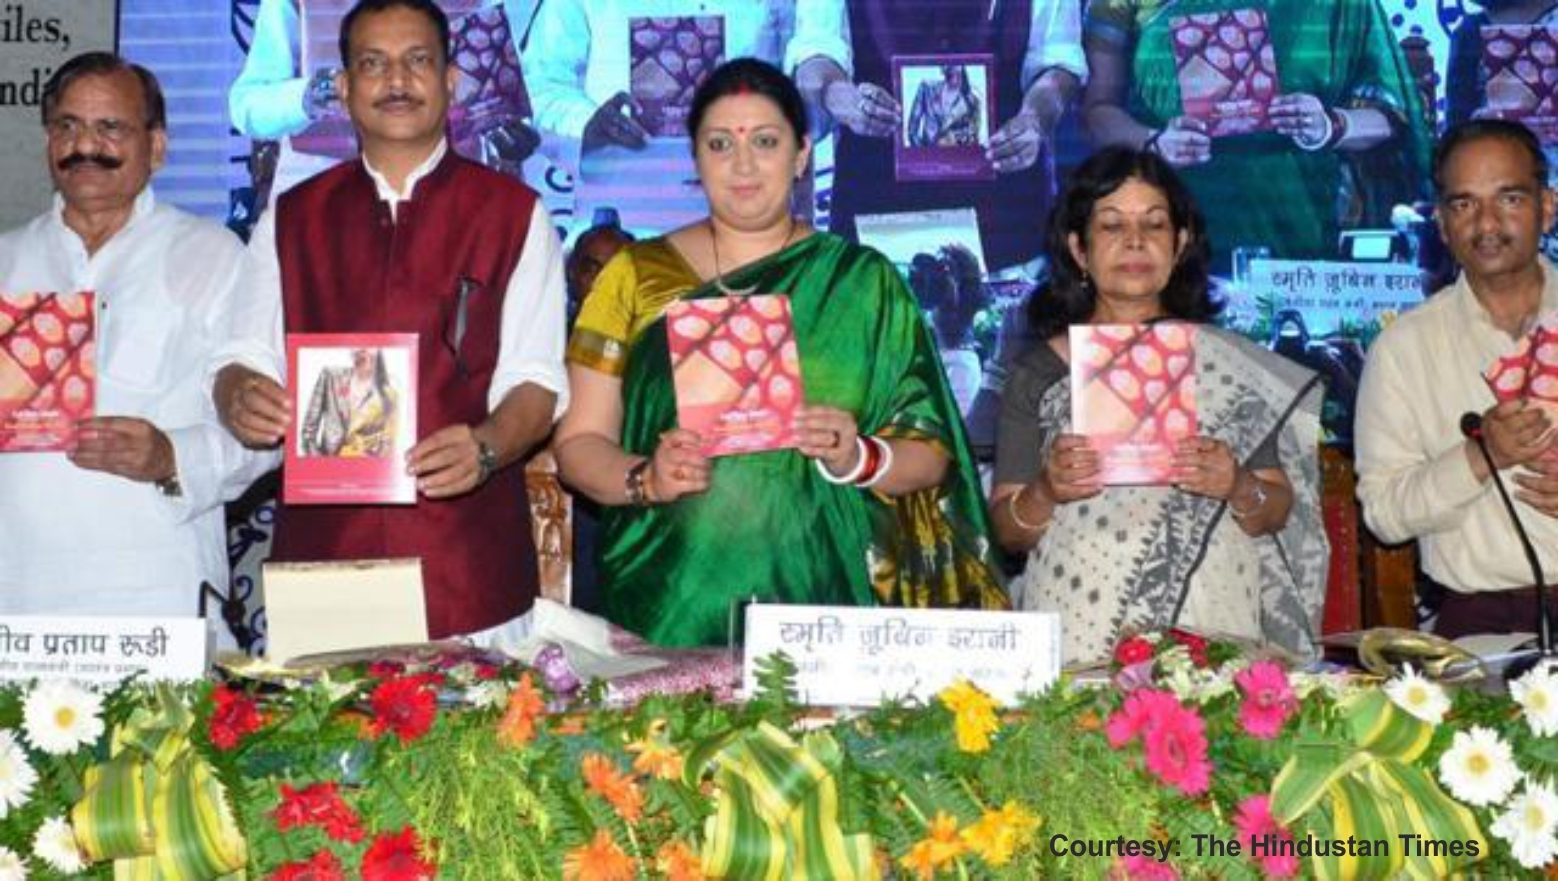 Smriti Irani announces a new weaver census on National Handloom Day | Intimohub.com